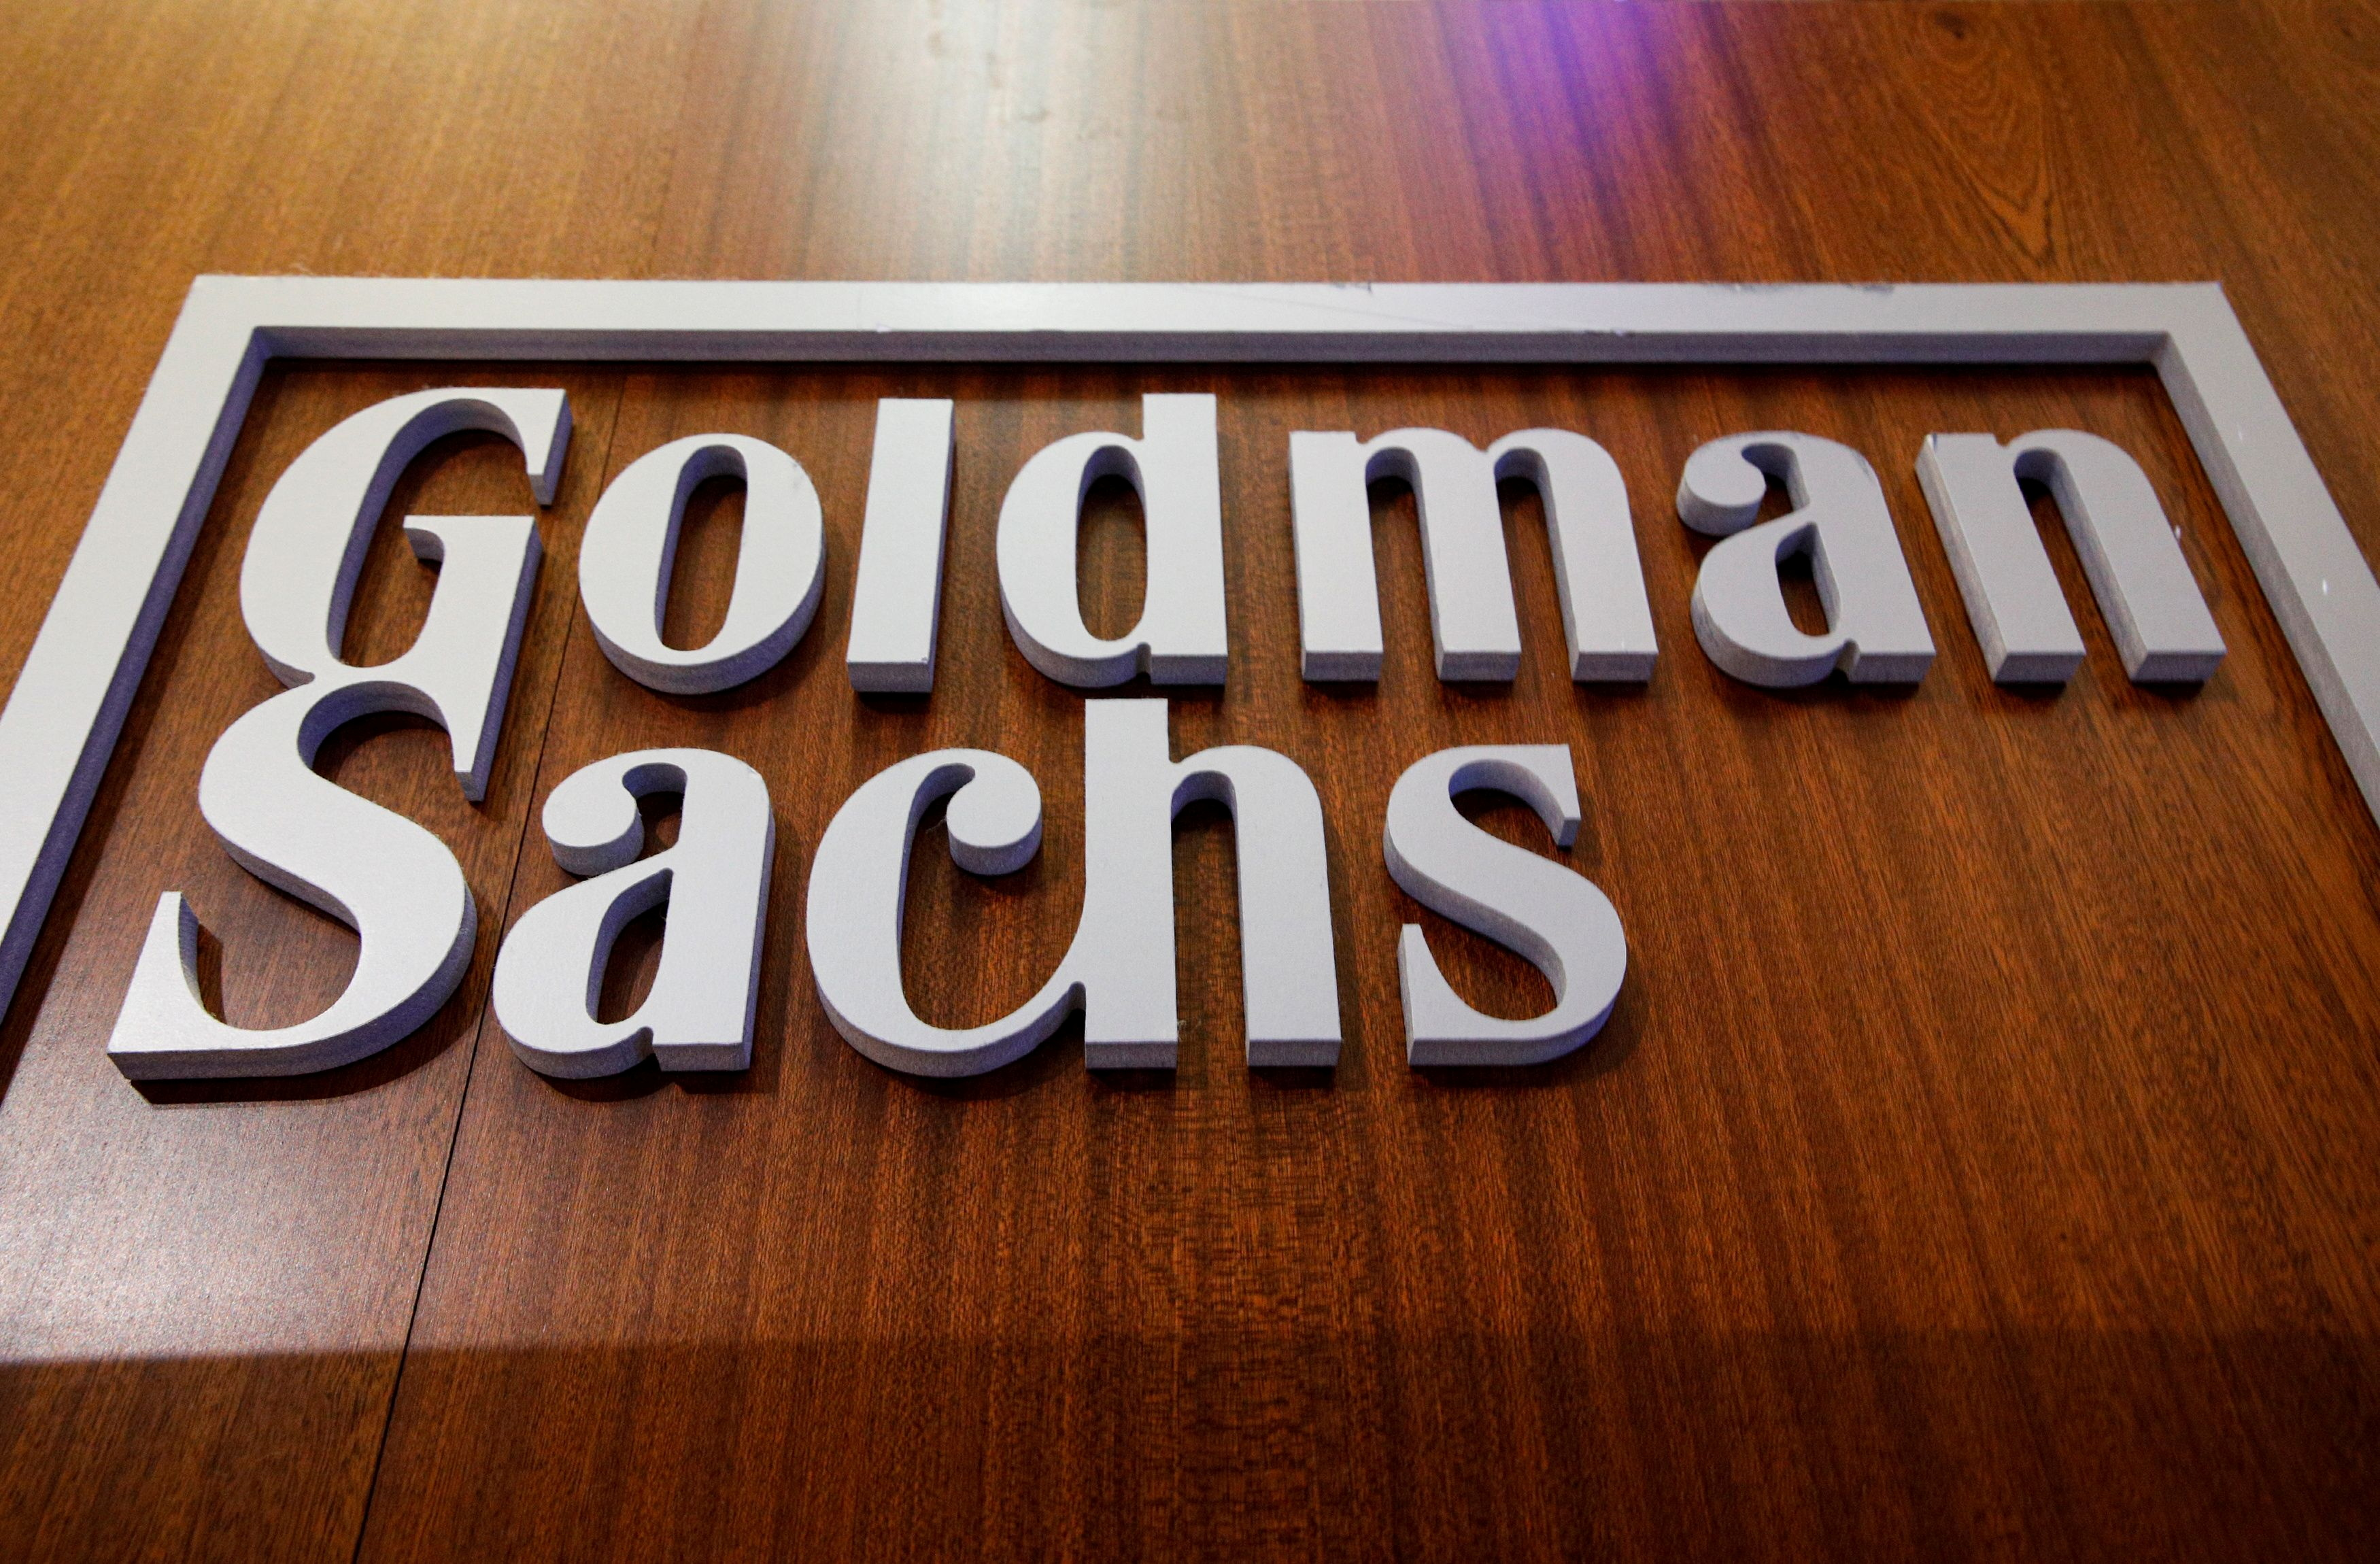 The Goldman Sachs company logo is on the floor of the New York Stock Exchange (NYSE). REUTERS/Brendan McDermid